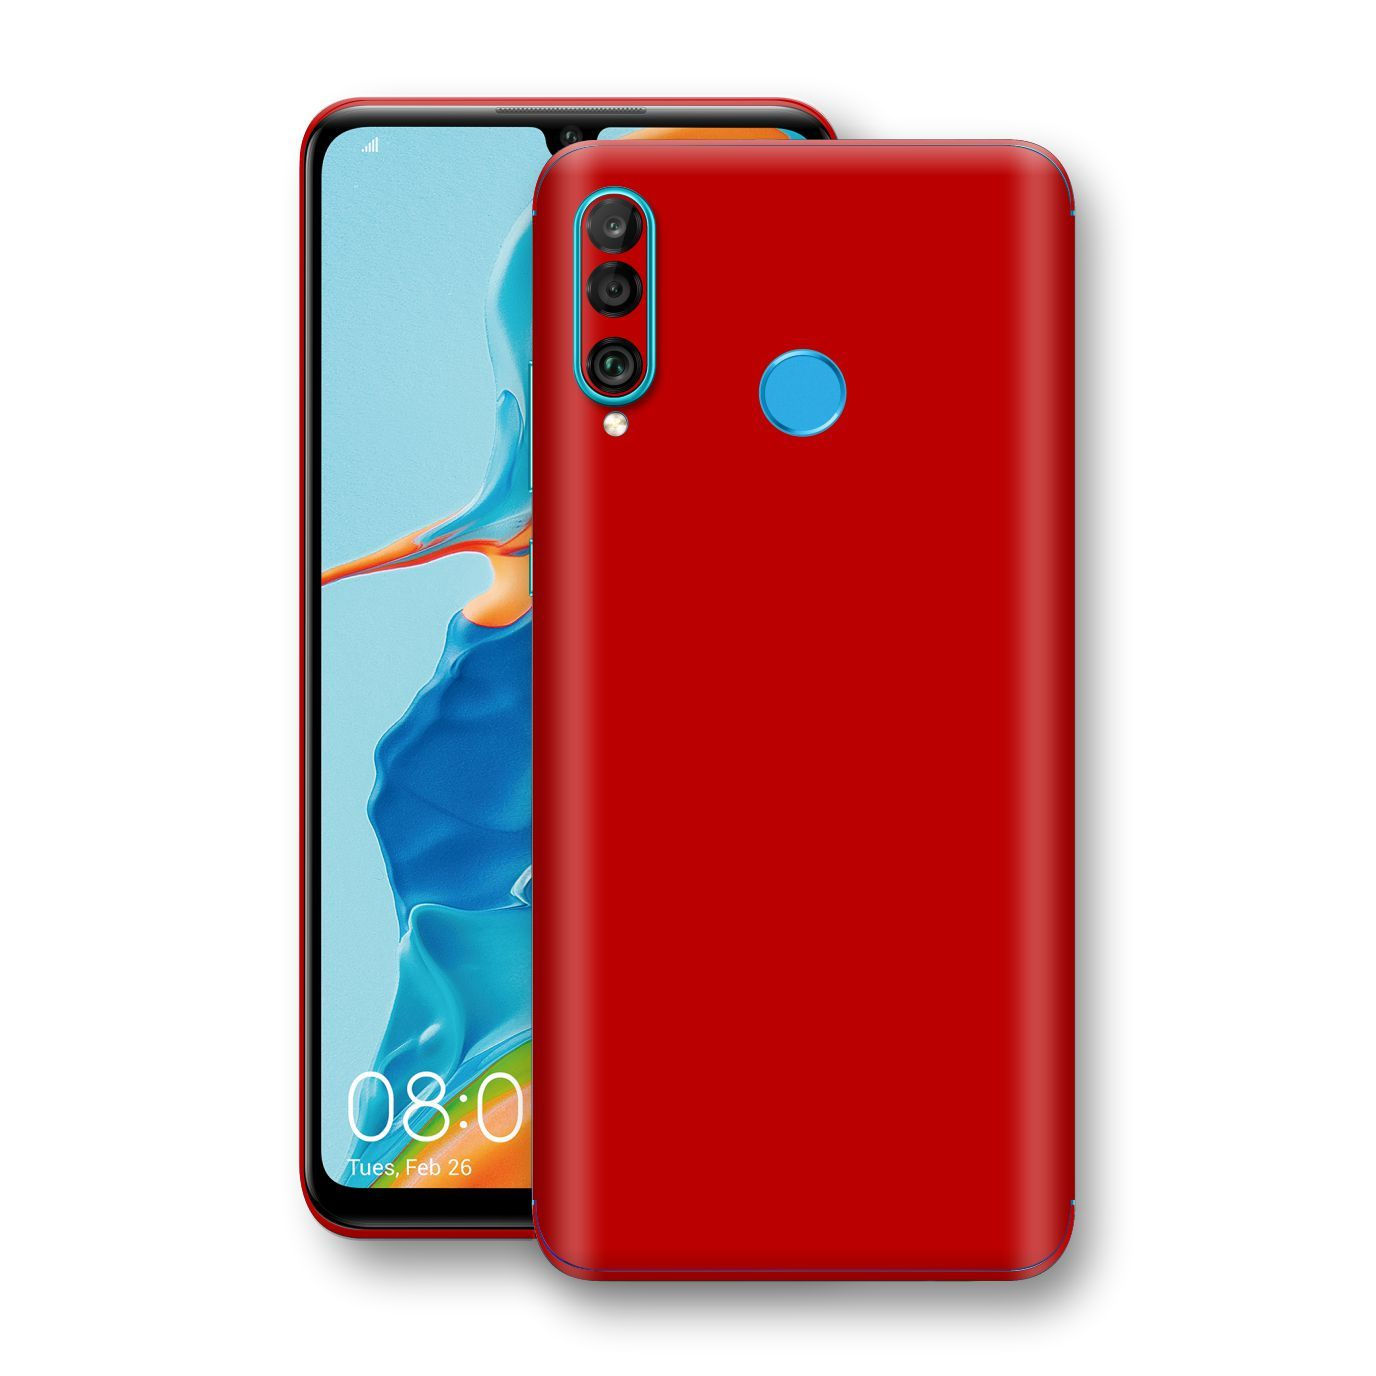 Huawei P30 LITE Deep Red Glossy Gloss Finish Skin, Decal, Wrap, Protector, Cover by EasySkinz | EasySkinz.com